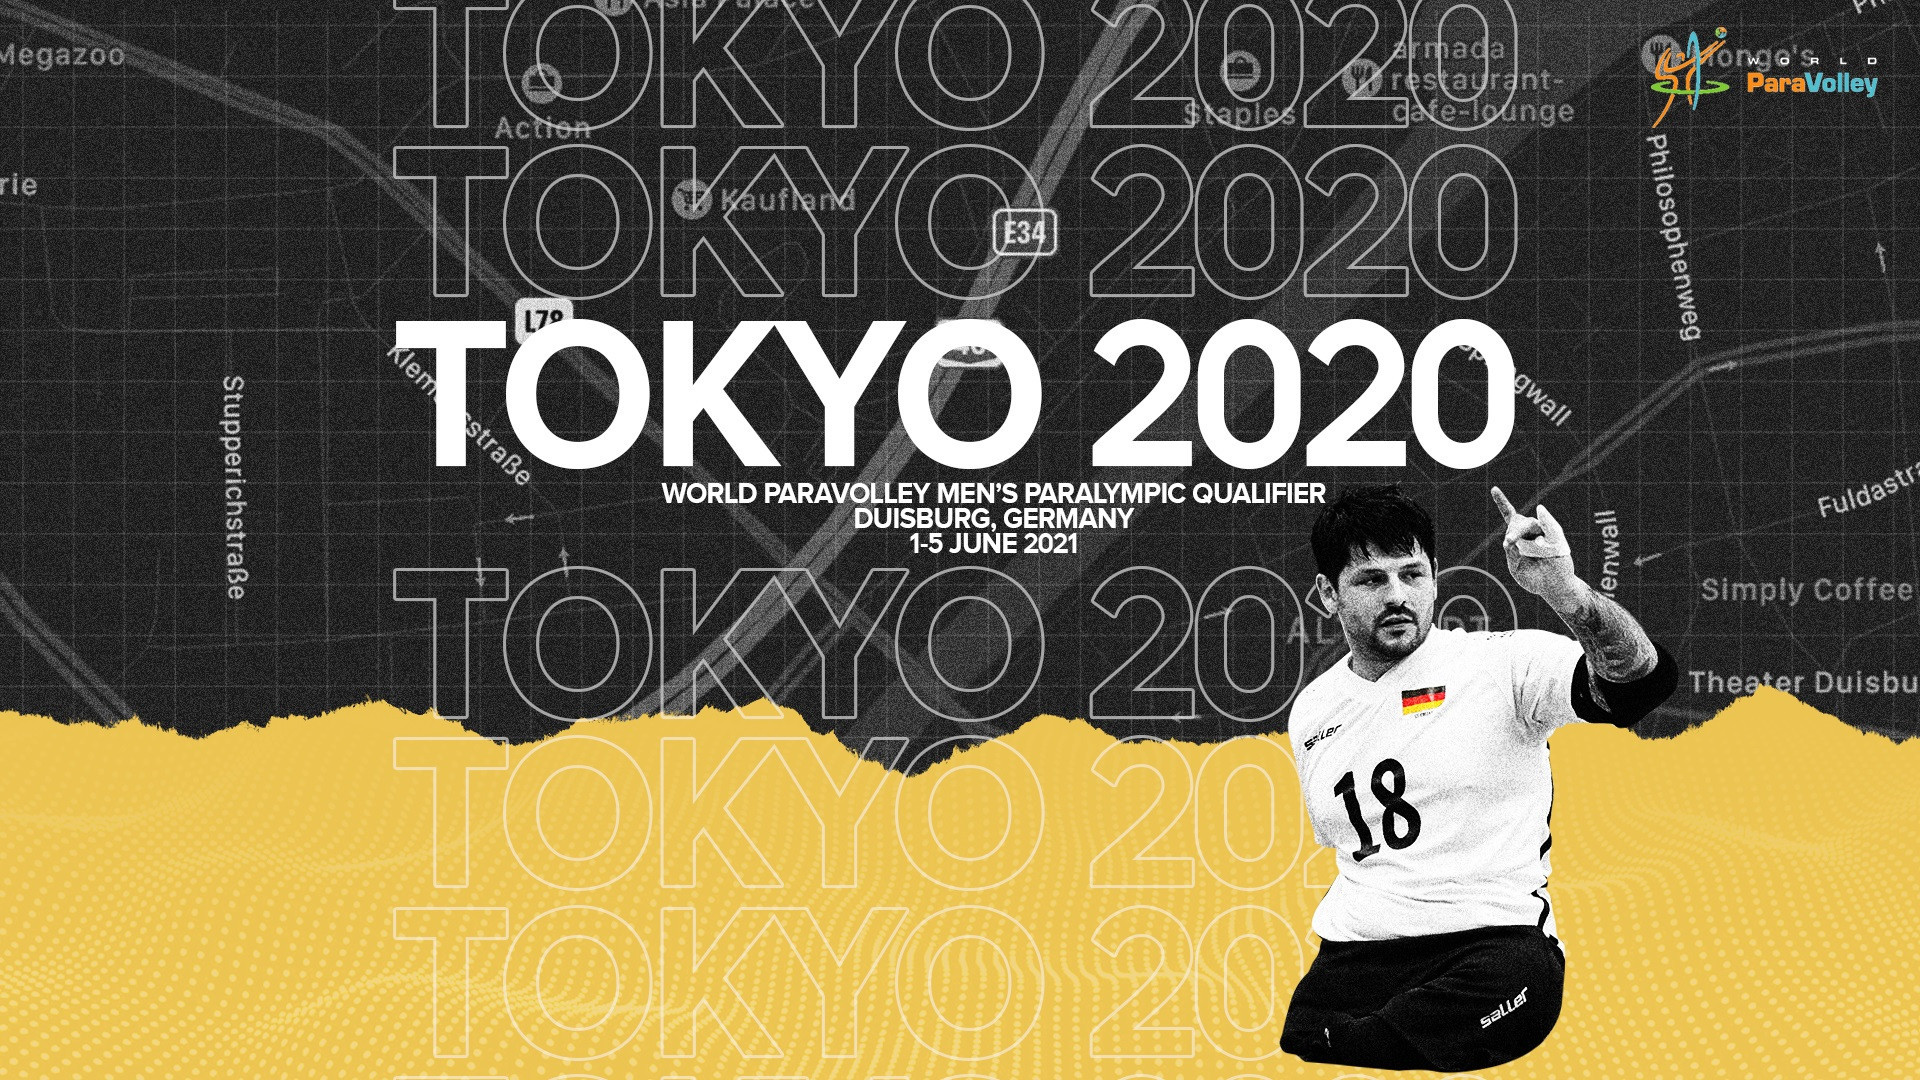 Duisburg in Germany is set to stage the final men's sitting volleyball qualification event for Tokyo 2020 next month ©World ParaVolley